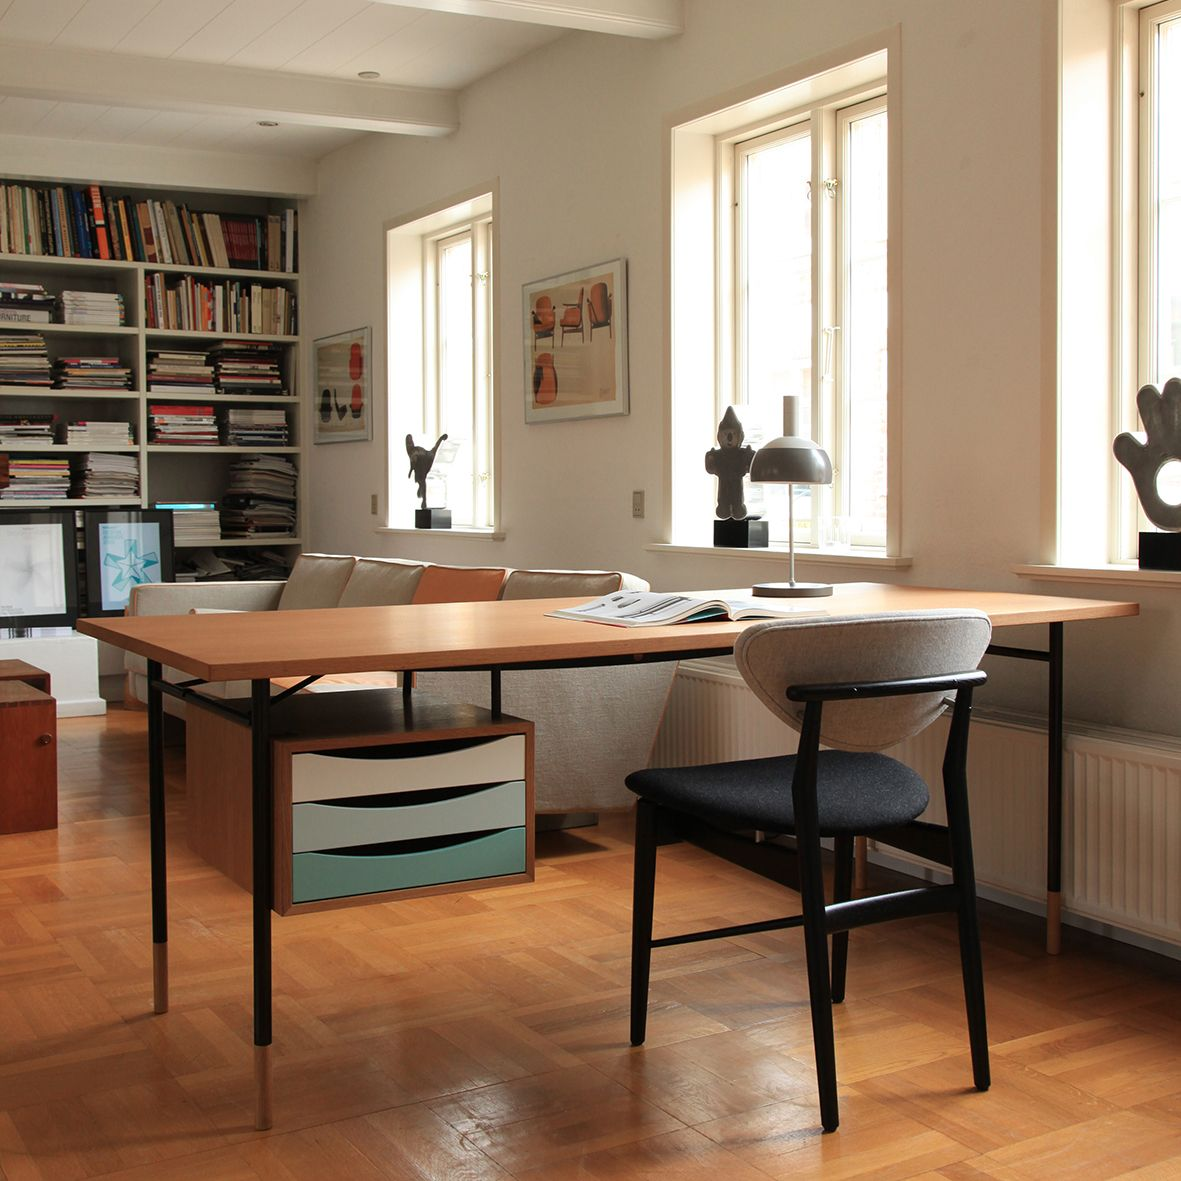 Nyhavn Table with Tray Unit and Model 108 Chair by Finn JuhlNyhavn Table with Tray Unit and Model 108 Chair by Finn Juhl  . Finn Juhl Chair 108. Home Design Ideas